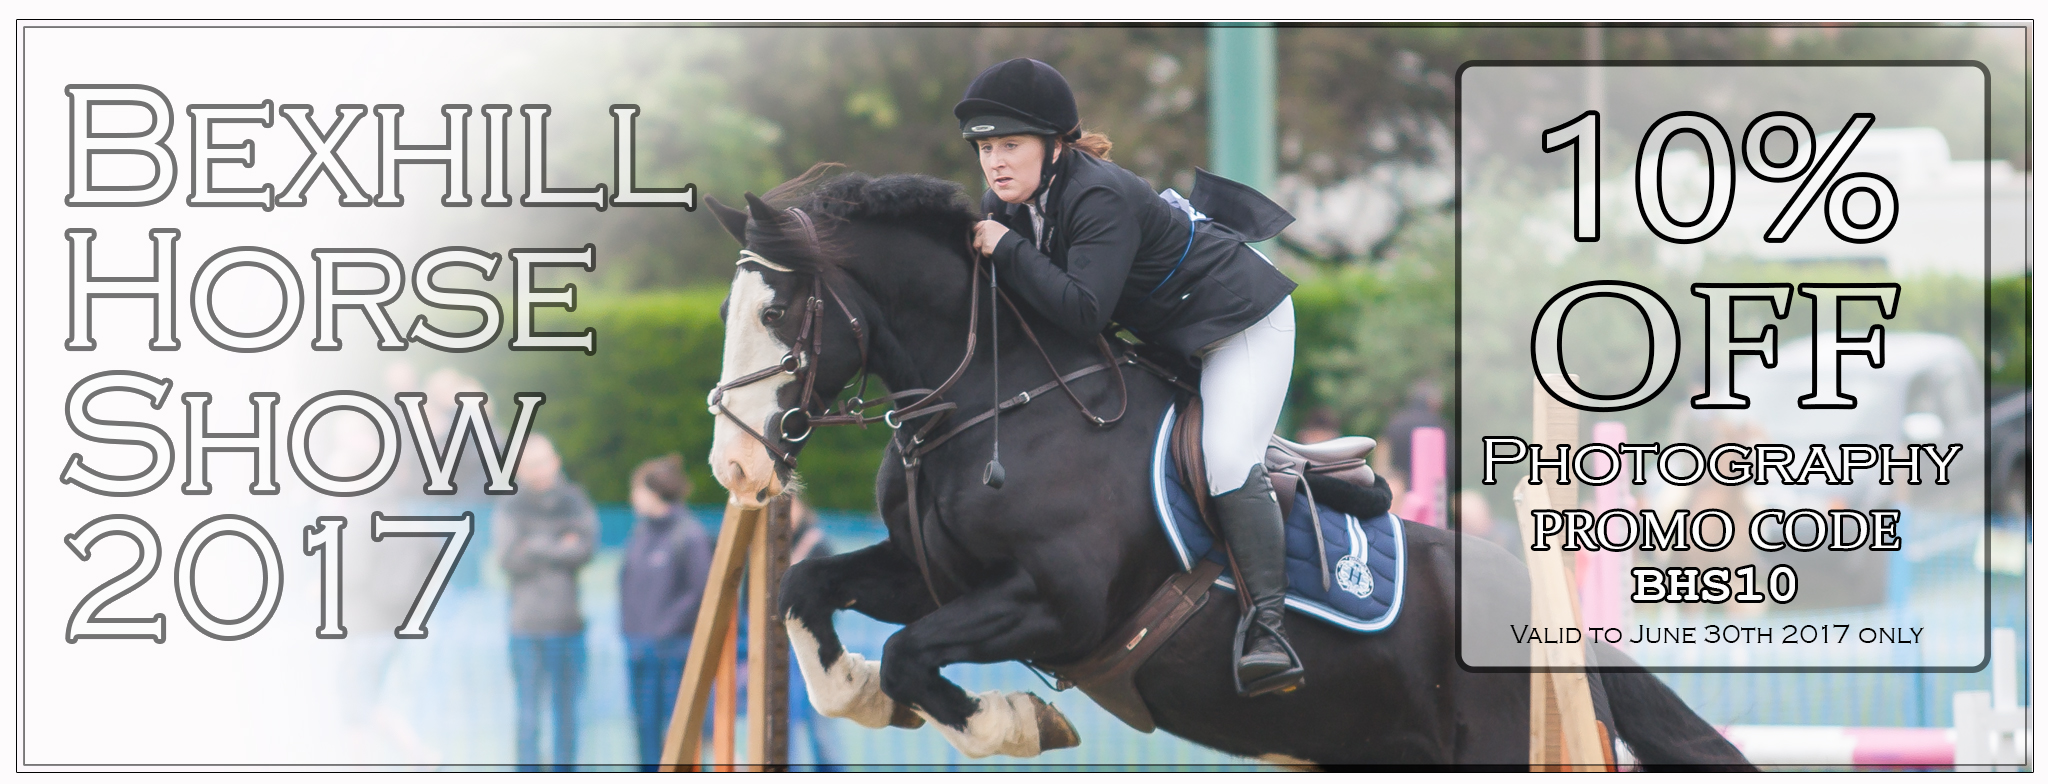 Bexhill Horse Show 2017 Photography